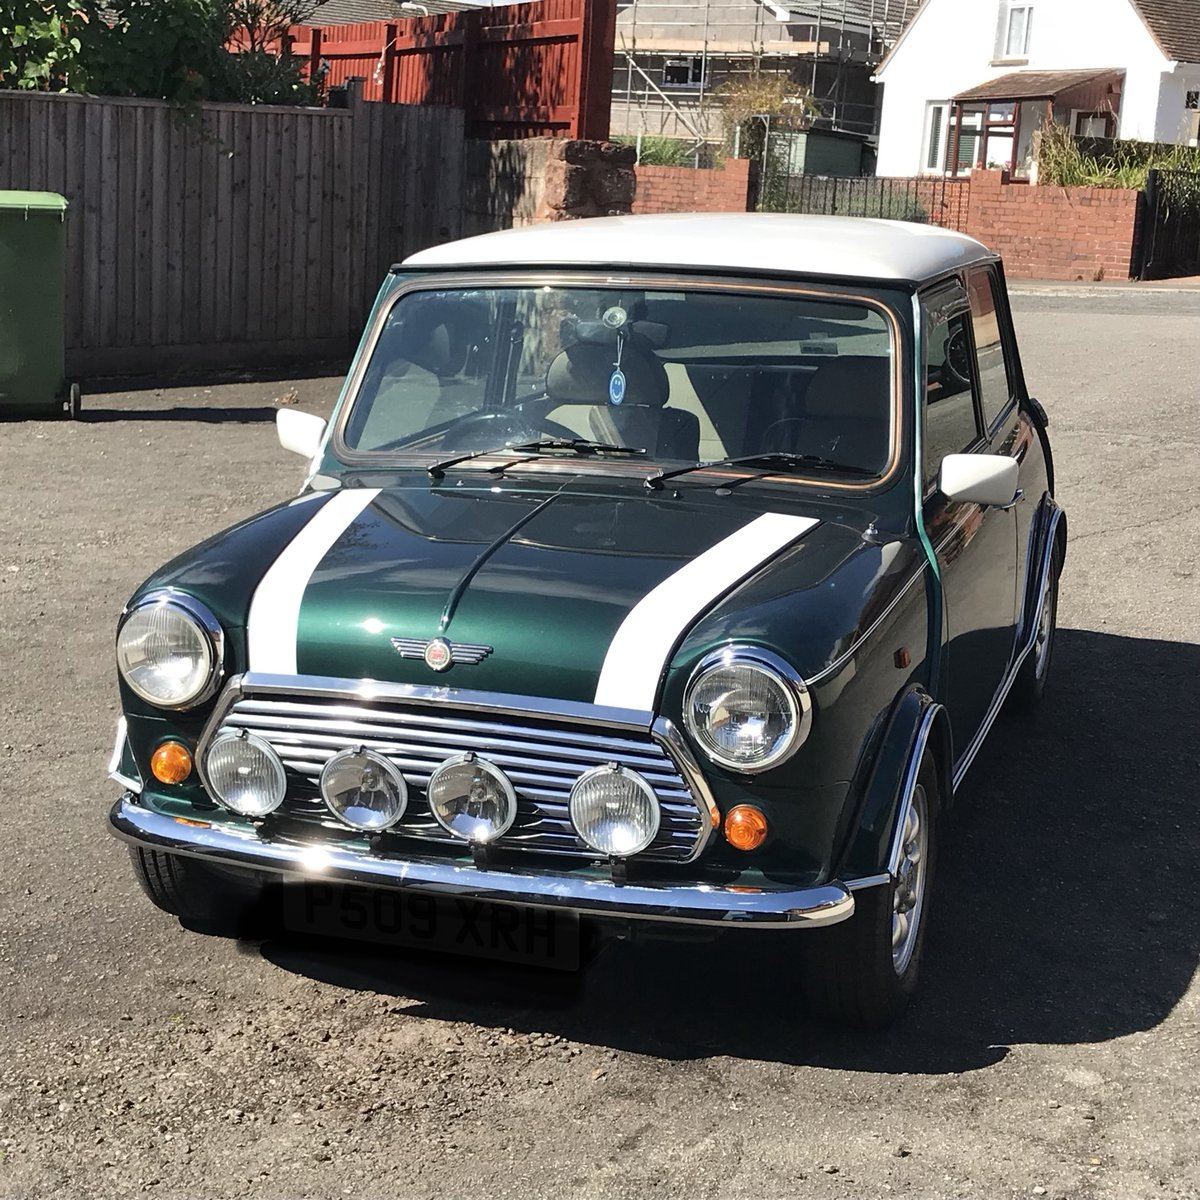 1996 Immaculately Presented Little Car Reluctant Sale For Sale (picture 5 of 5)